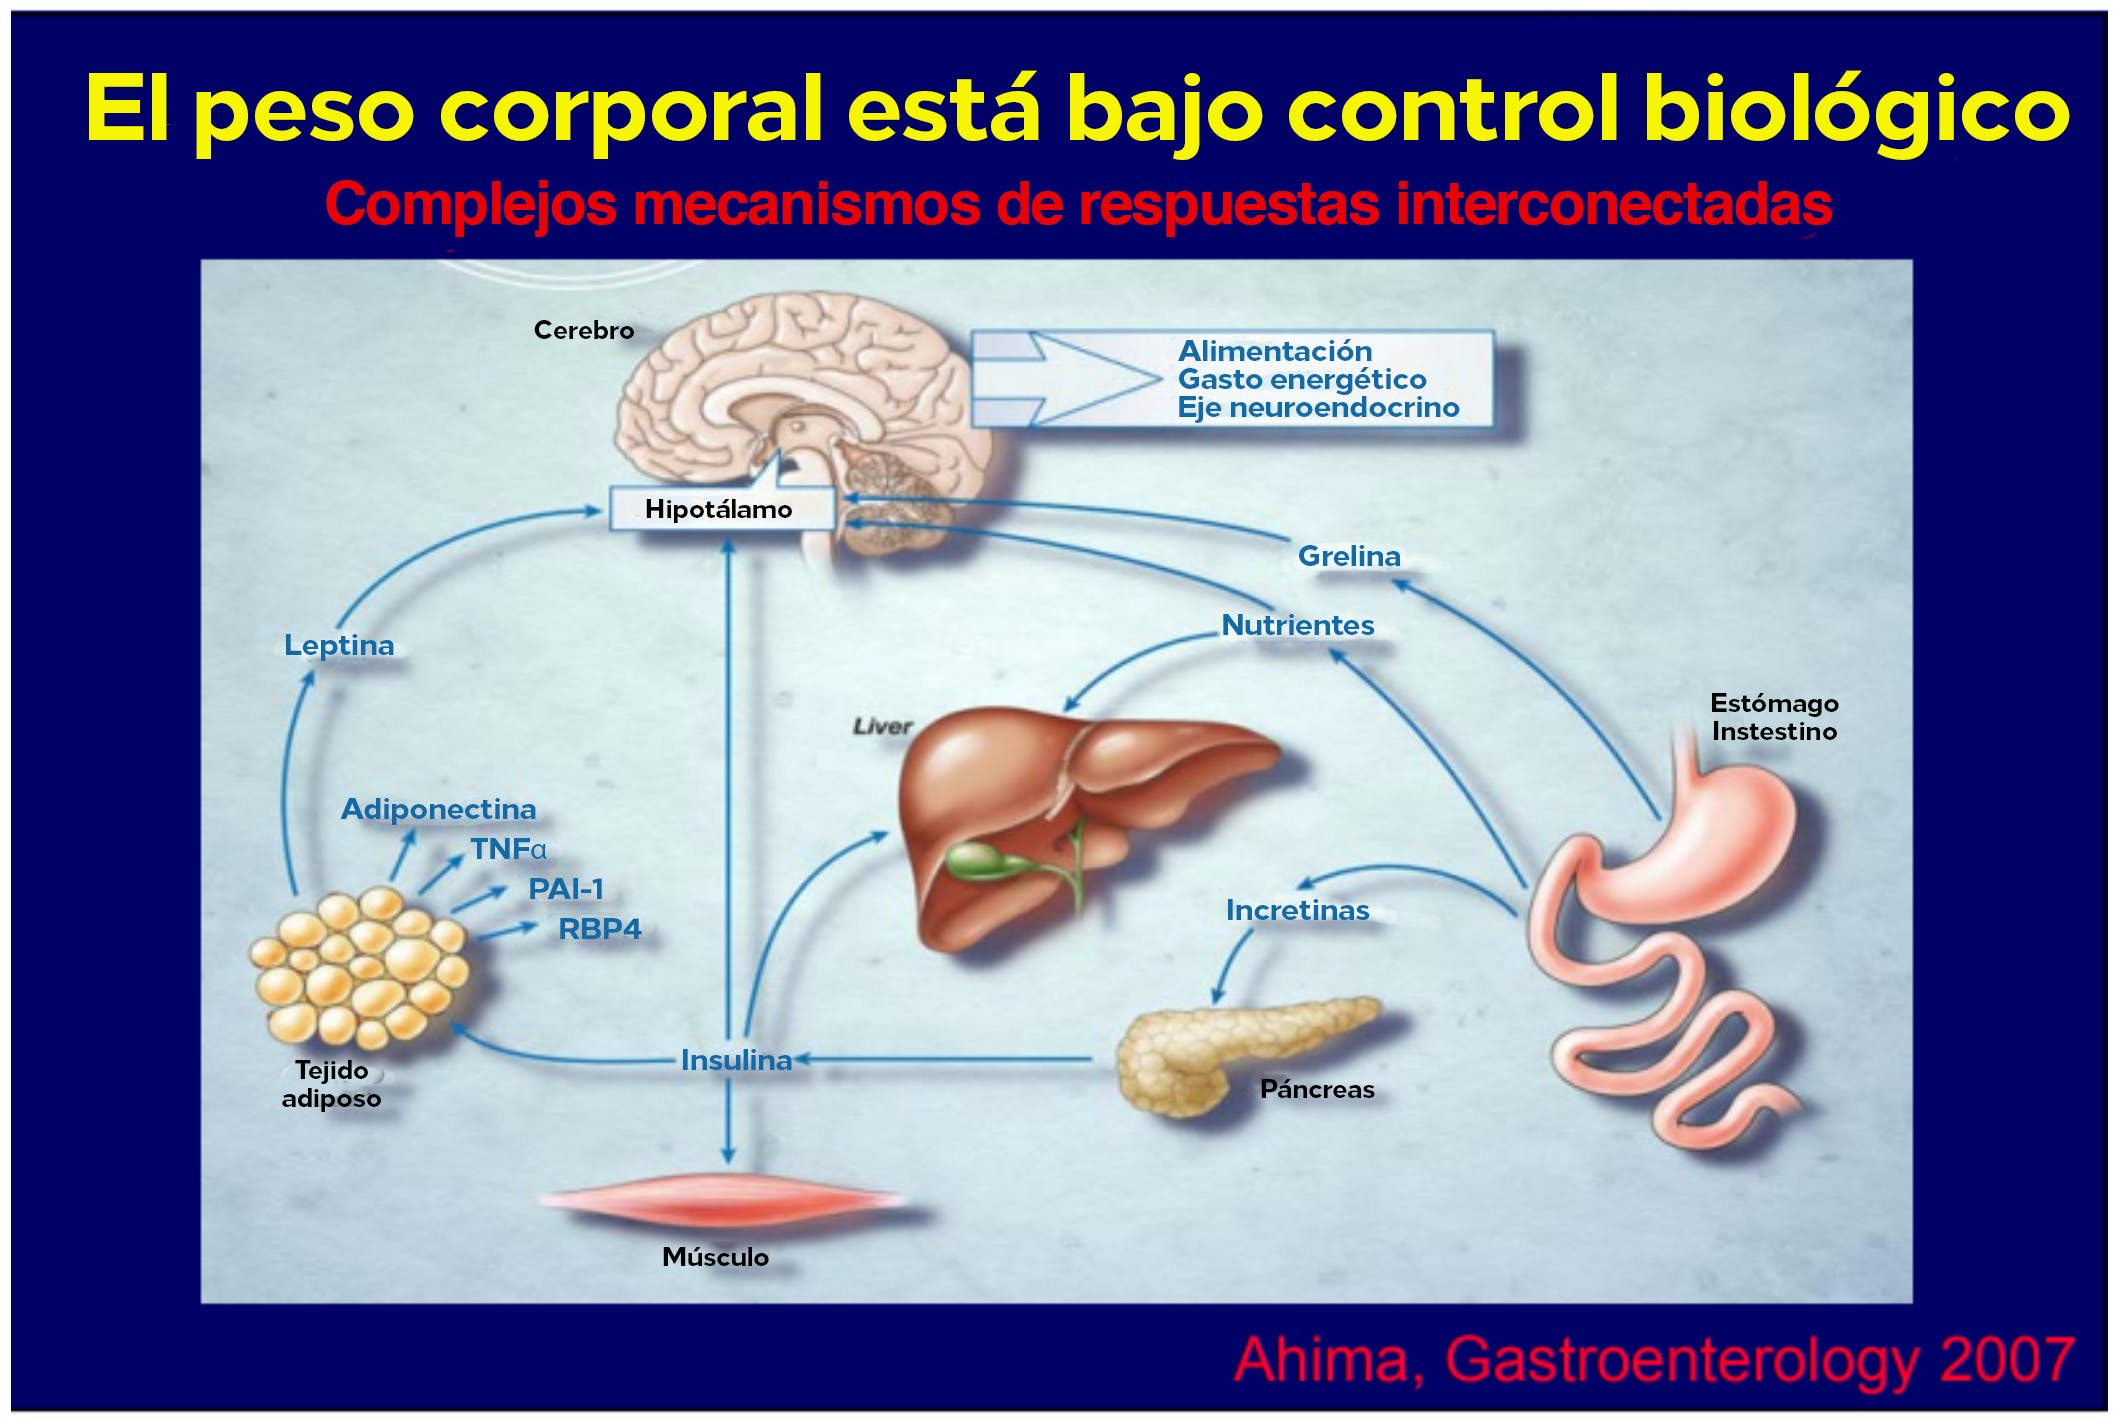 Body weight is under biological control